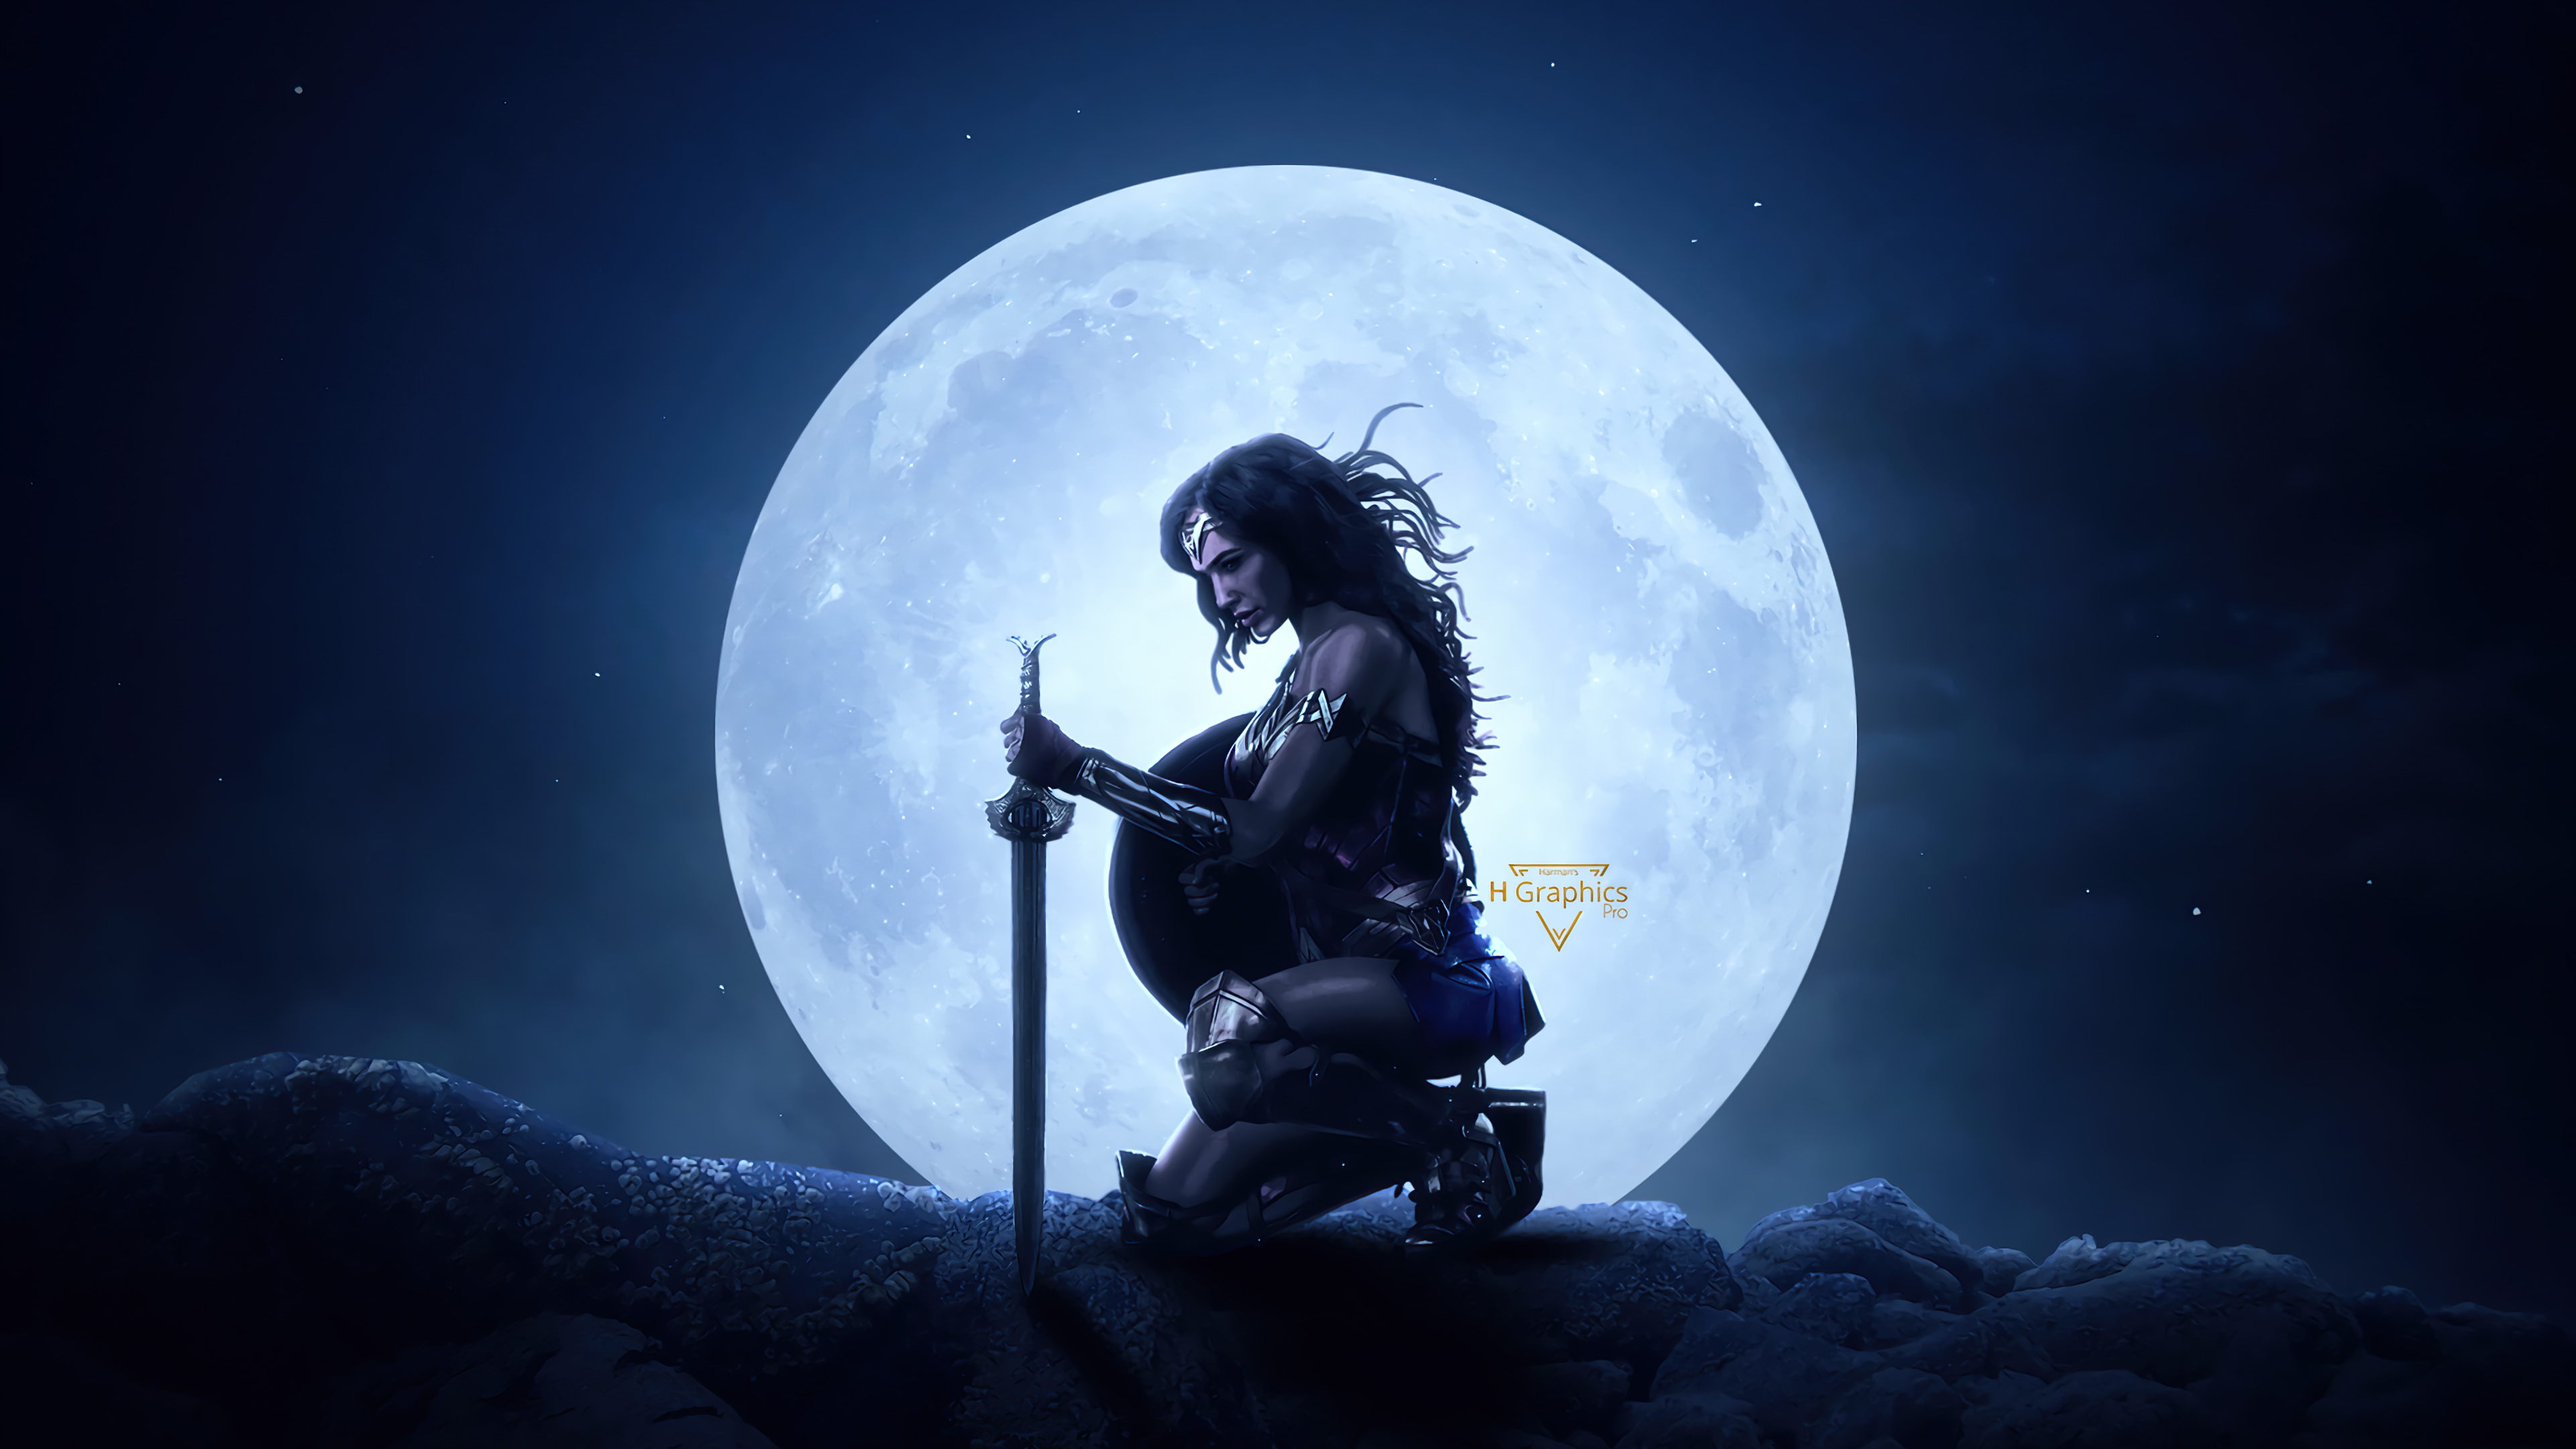 Wallpaper Wonder woman with moon in the background